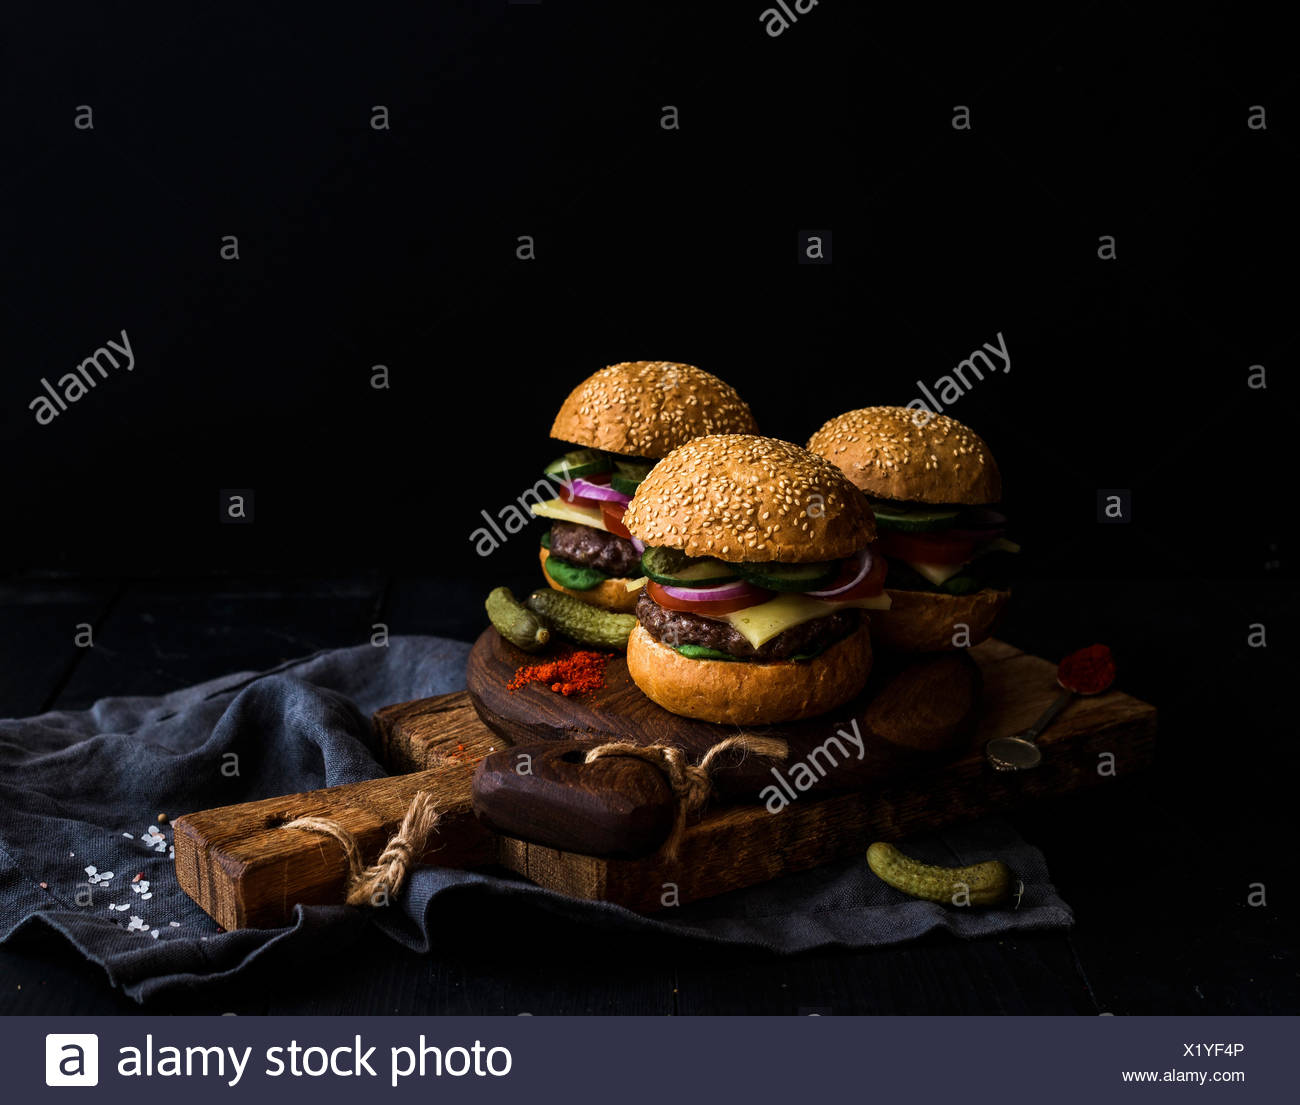 Fresh beef burgers with cheese, vegetables, pickles and spicy tomato sauce on paper on rustic wooden boards, black background, s - Stock Image